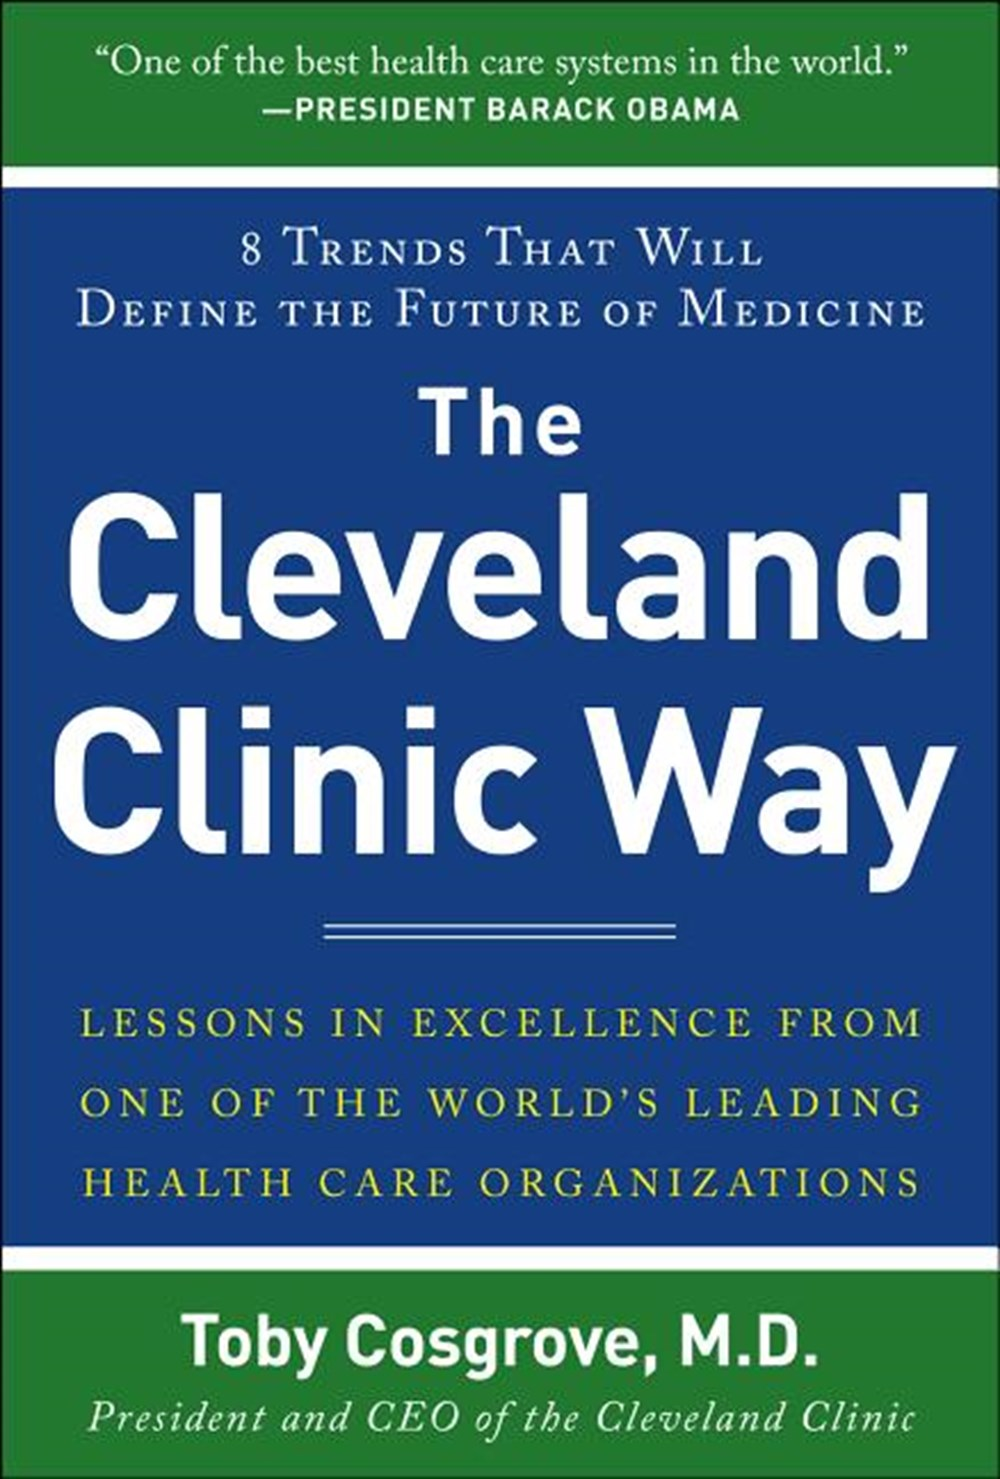 Cleveland Clinic Way Lessons in Excellence from One of the World's Leading Healthcare Organizations